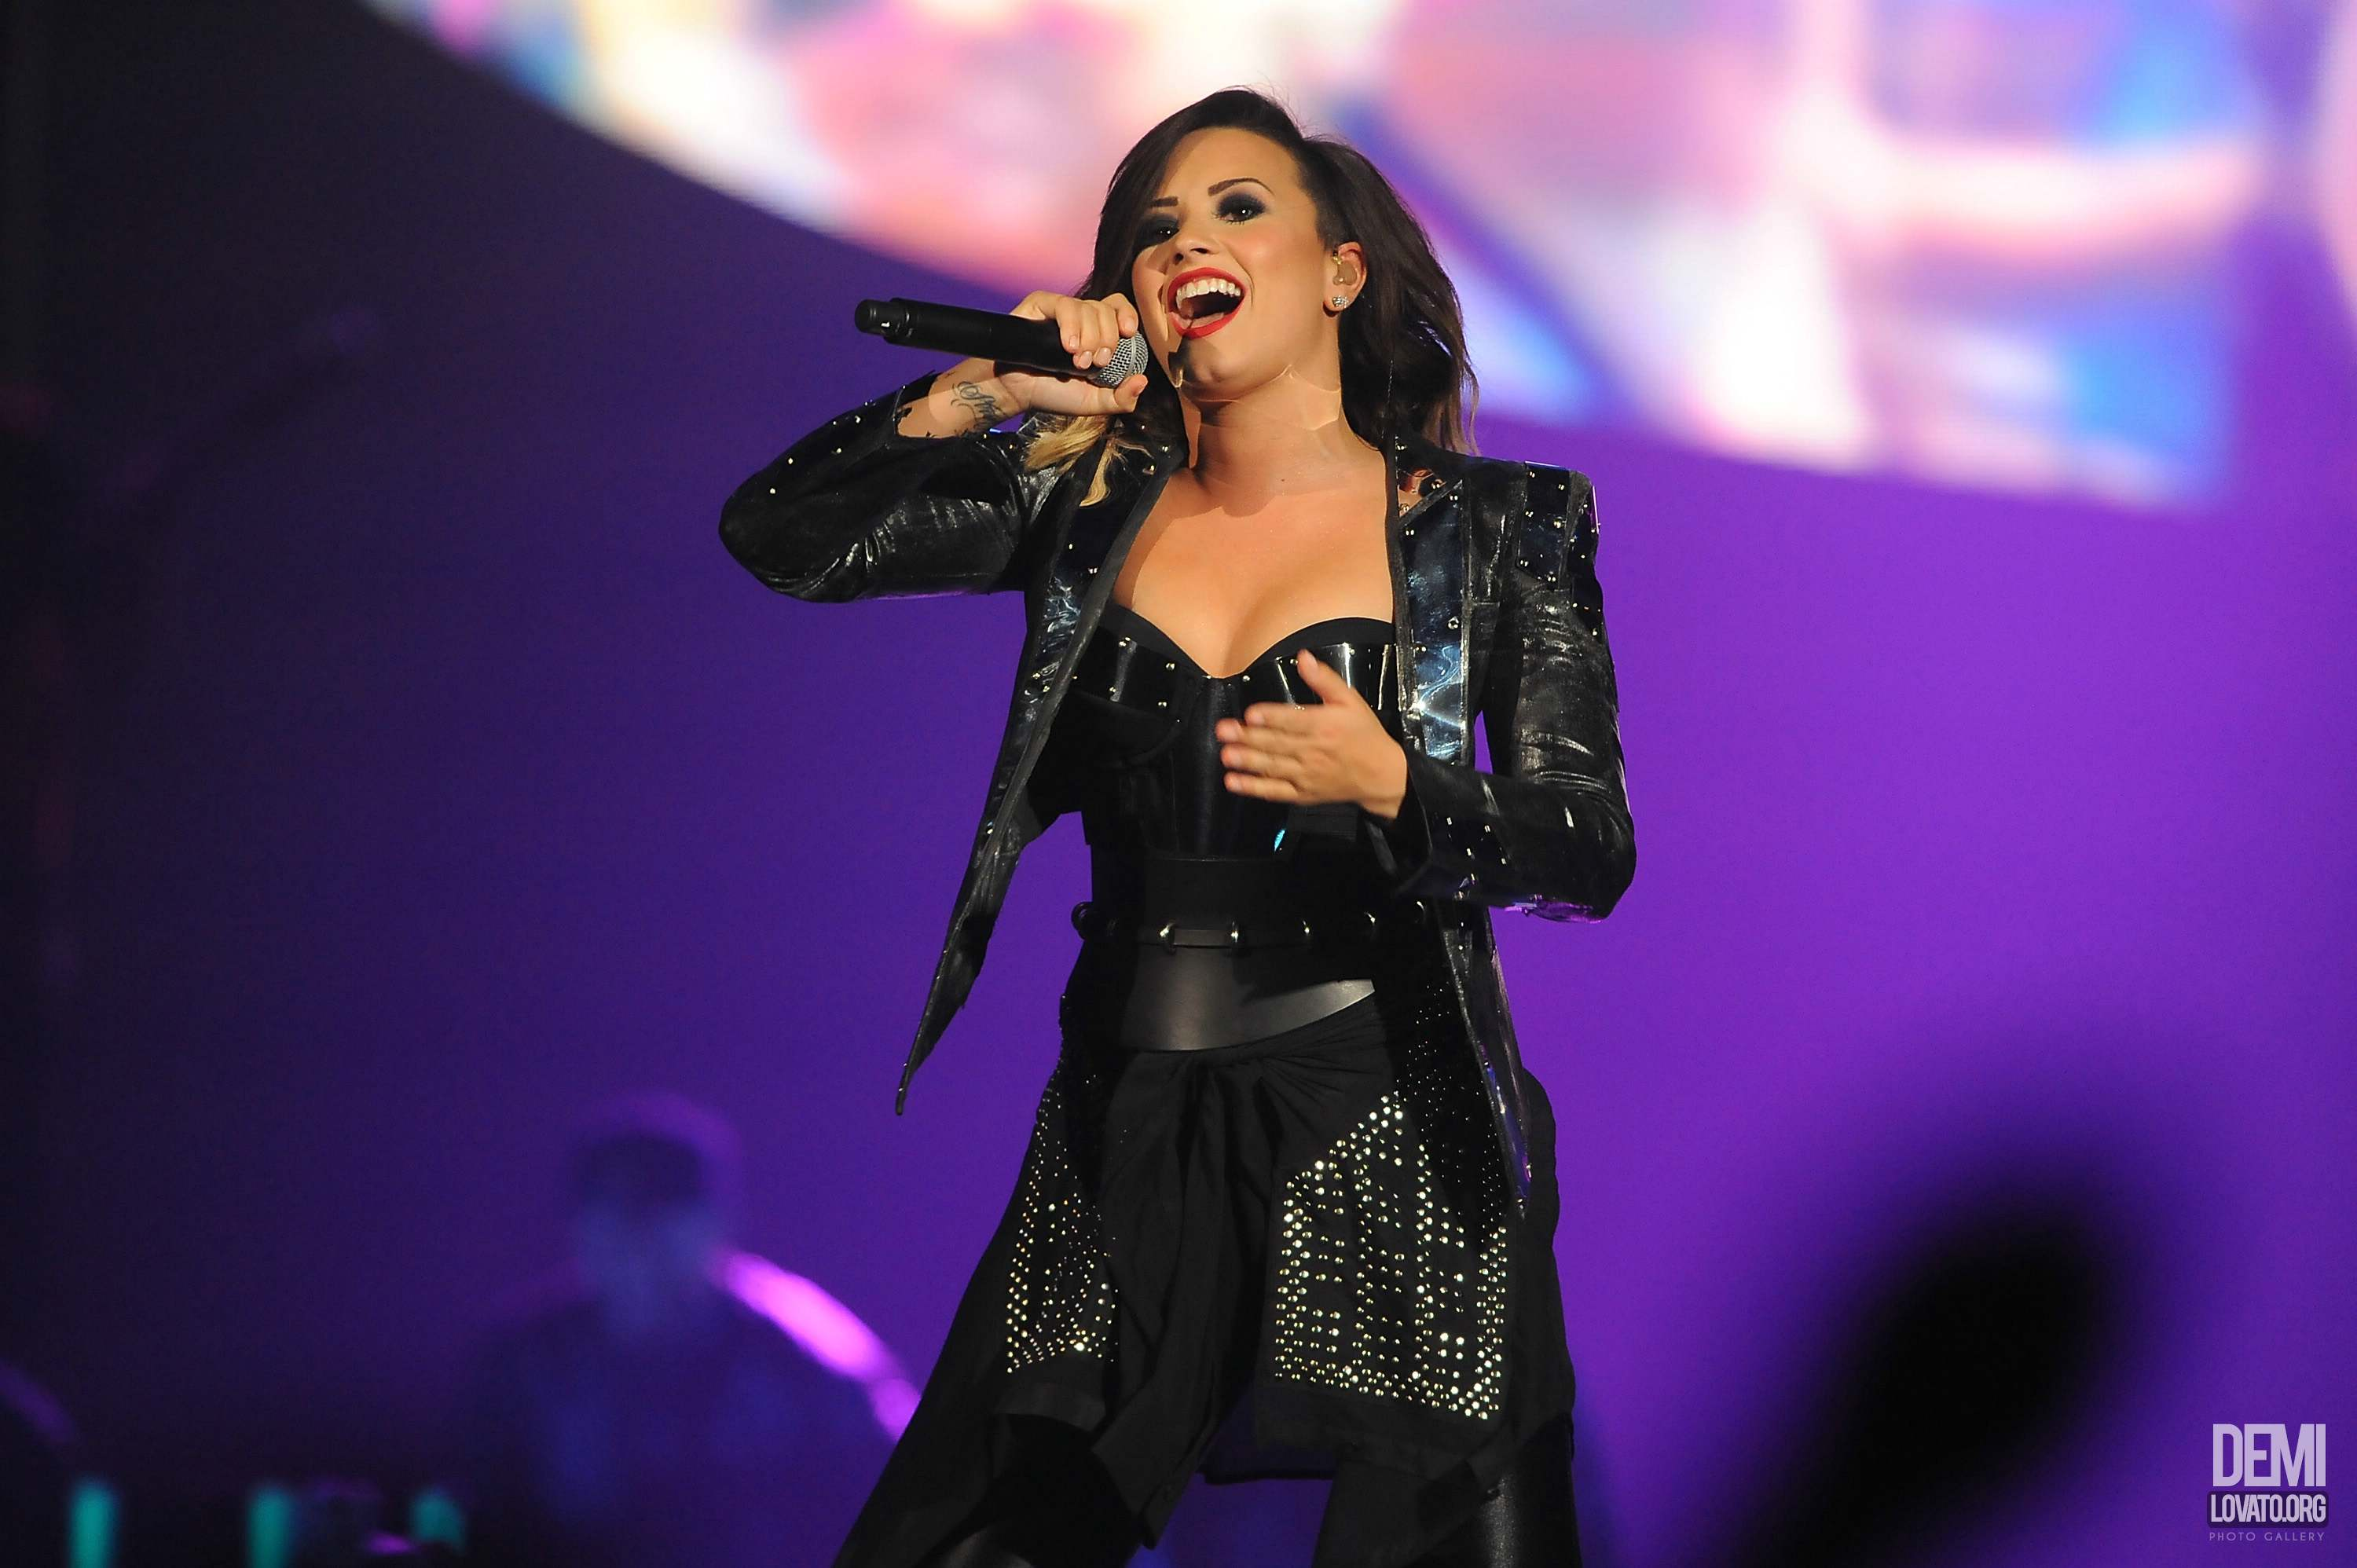 Demi Lovato Performs at Baltimore, Maryland (September 6, 2014)